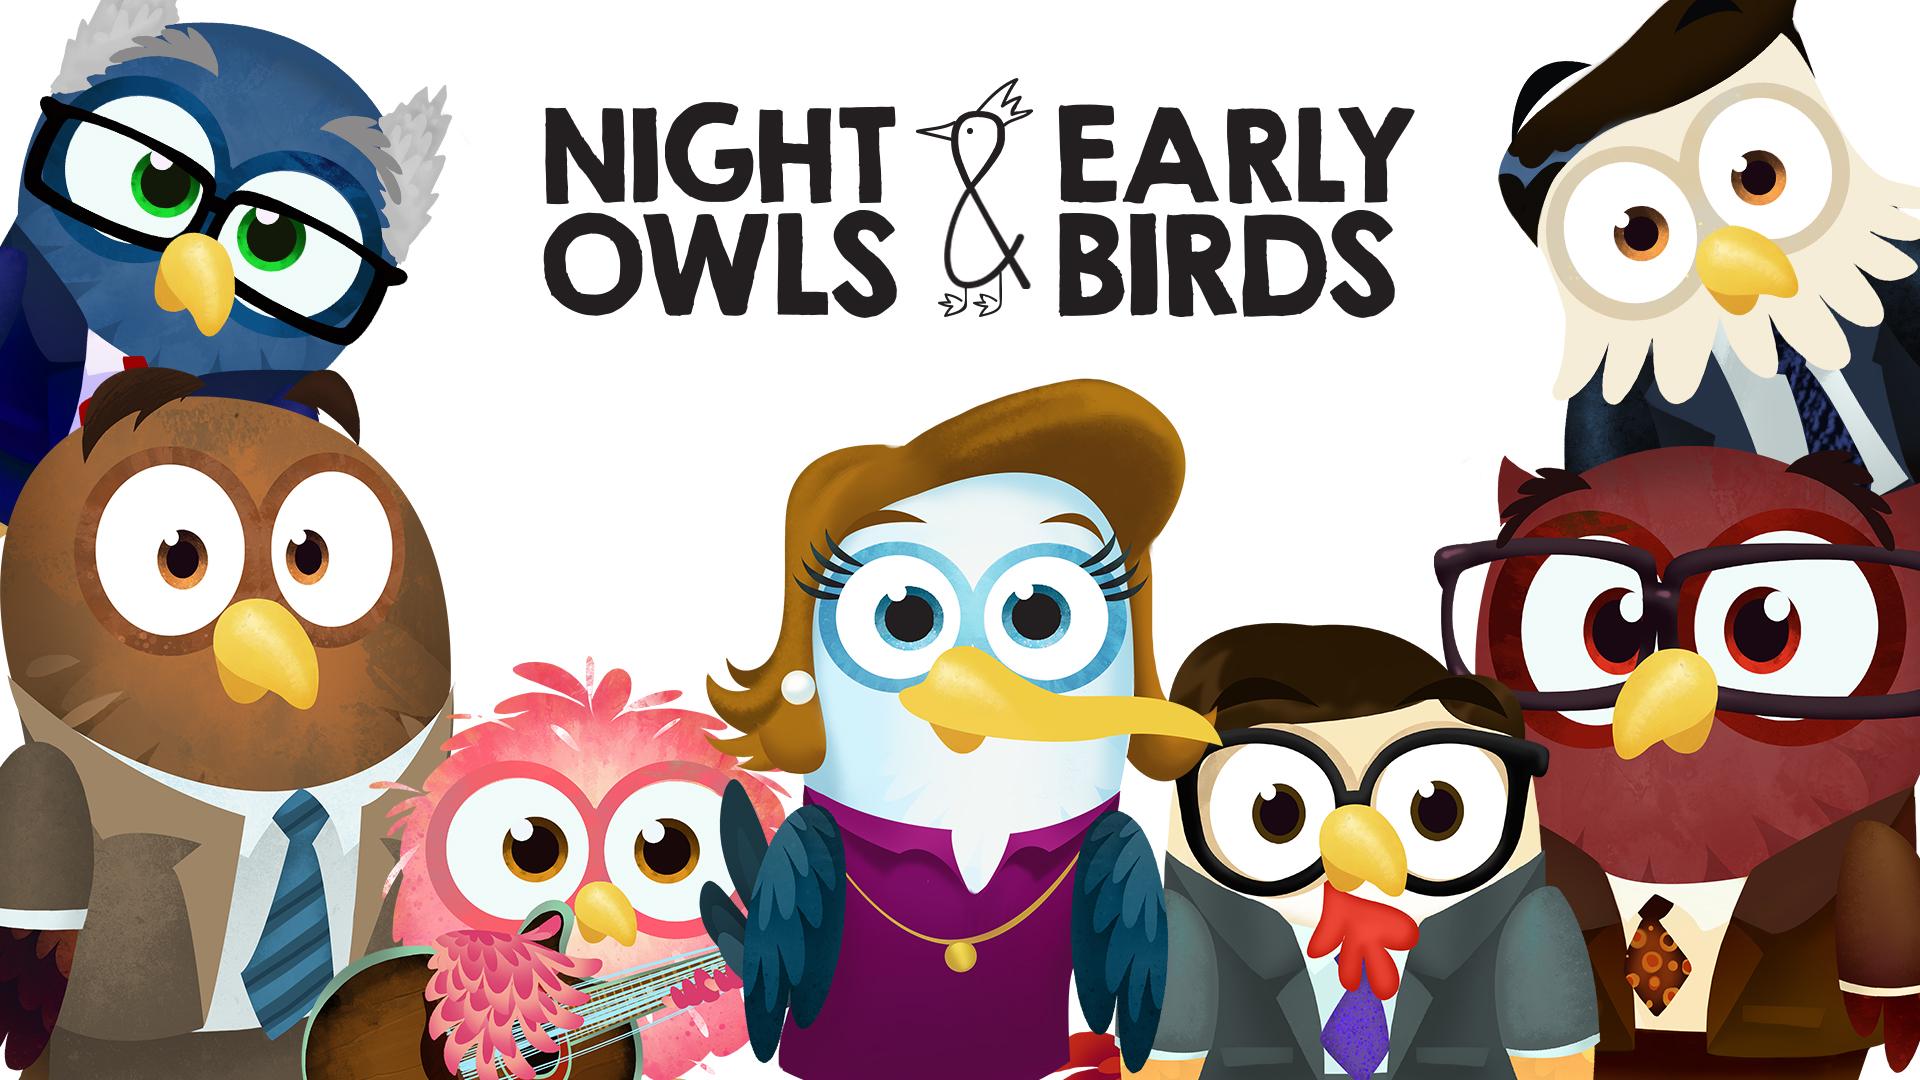 New Episodes of Night Owls and Early Birds!